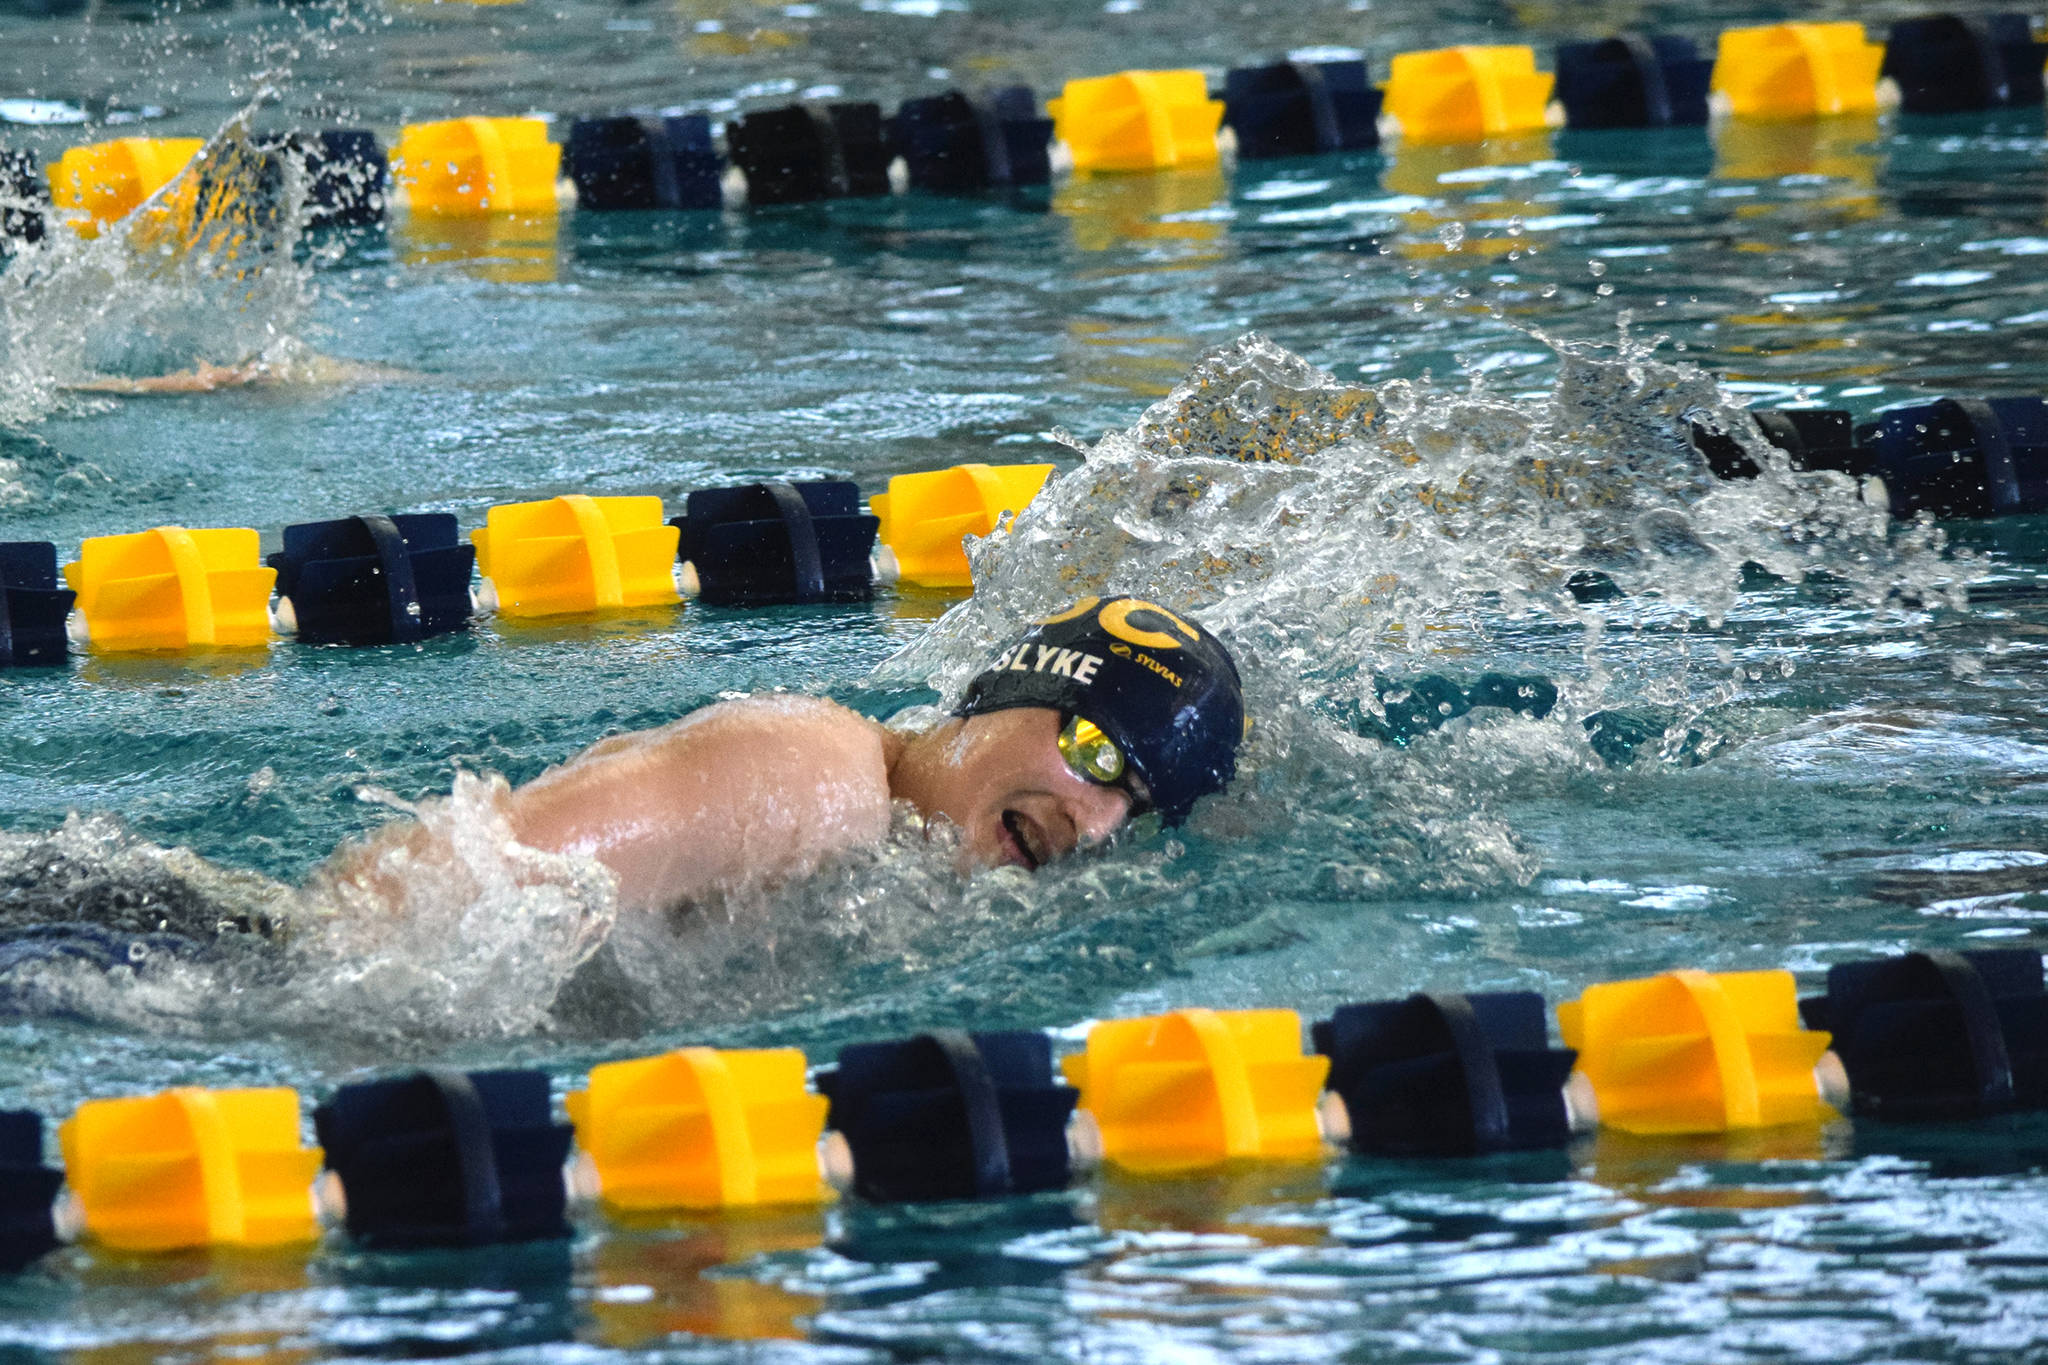 Glacier Swim Club's Chaz VanSlyke swims the 500-yard freestyle on the second day of the Savannah Cayce Southeast Championships at the Dimond Park Aquatic Center on Saturday, April 6, 2019. (Nolin Ainsworth | Juneau Empire)